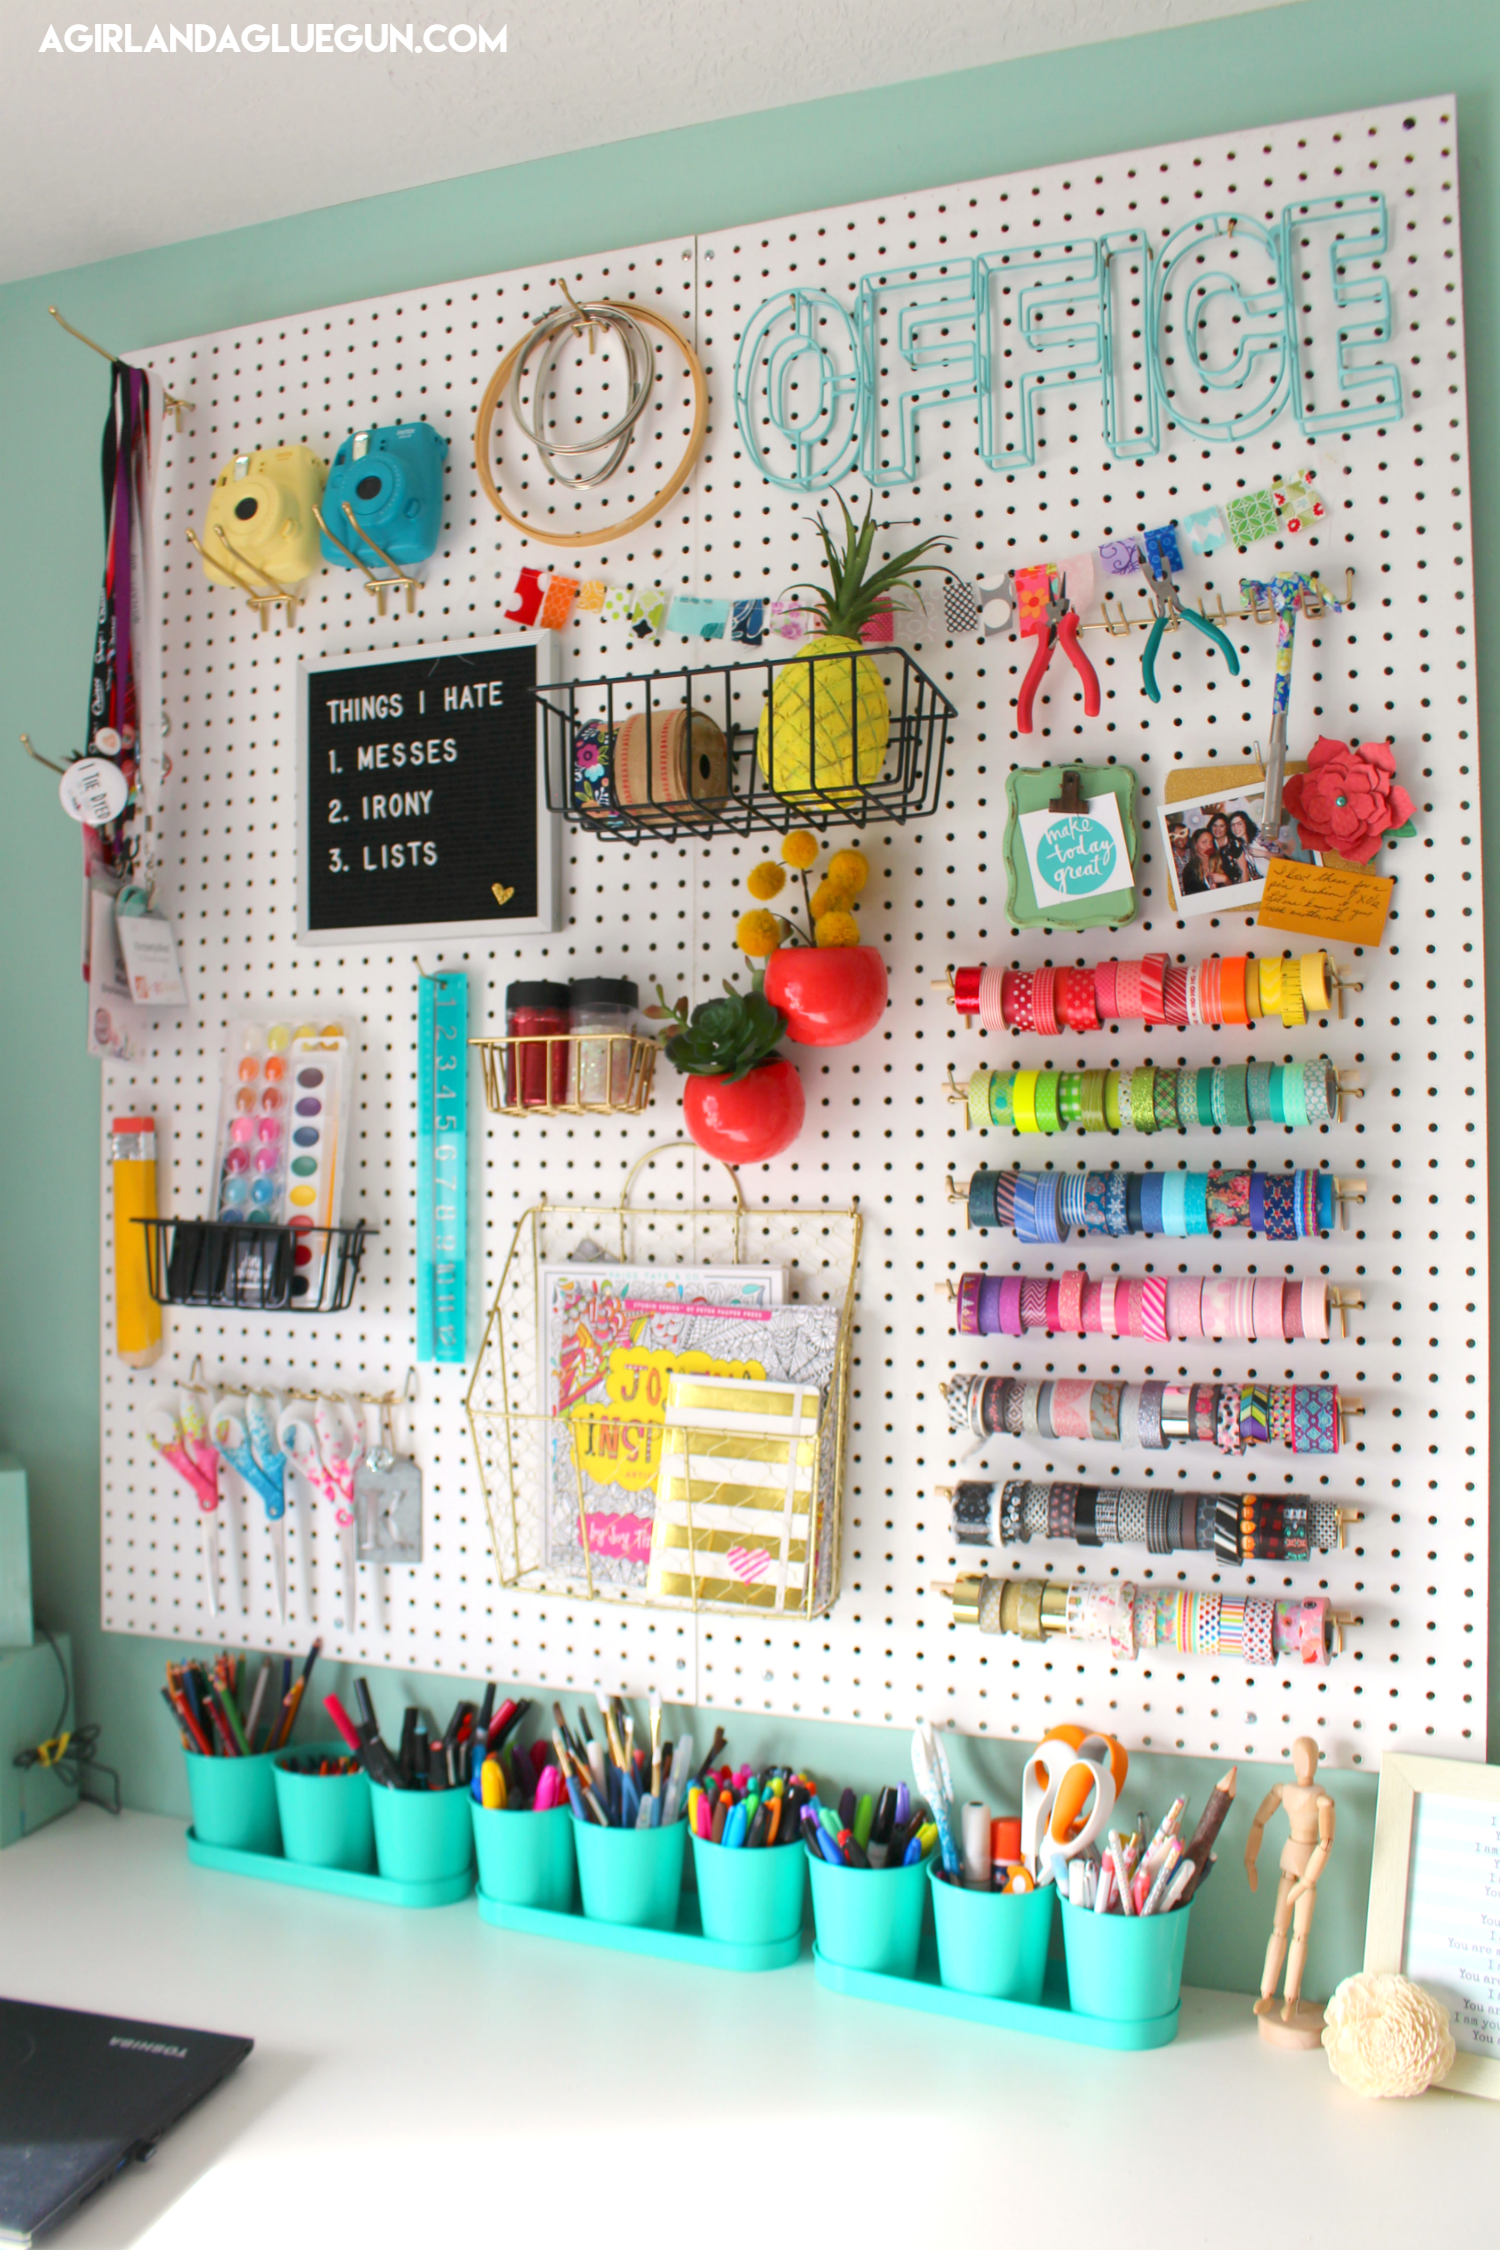 over 30 ways to organize with a Peg board | Craft room ...